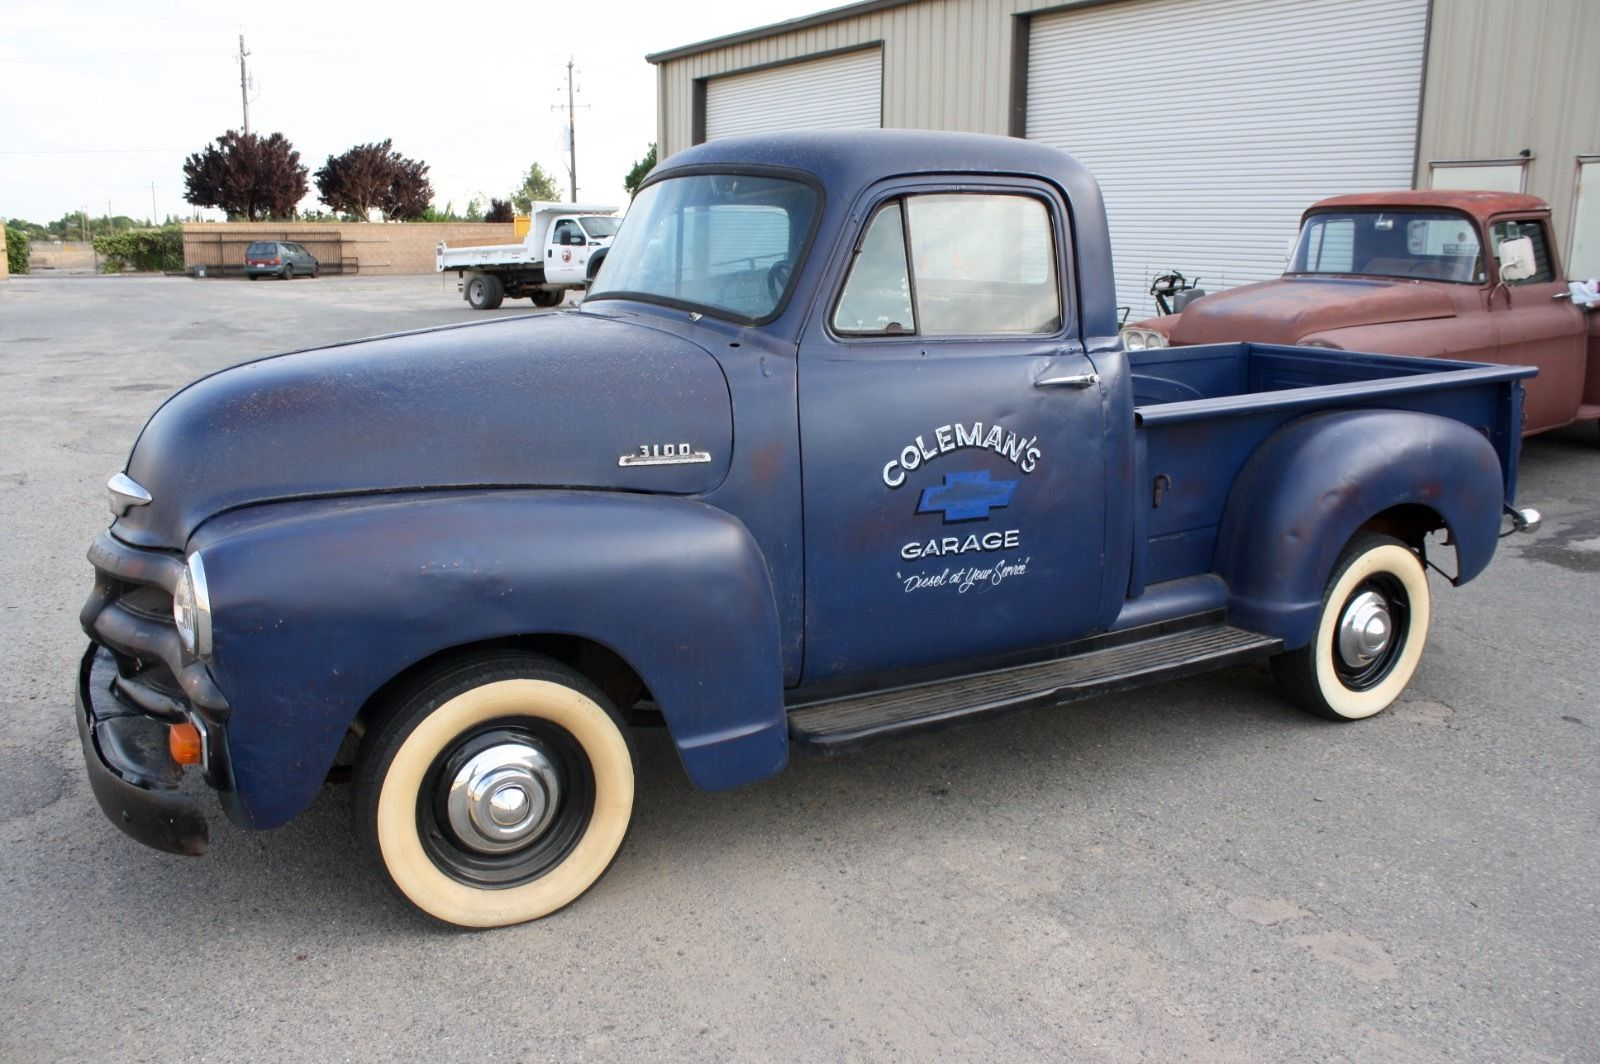 Daily Turismo Ol Betsy 1954 Chevrolet Pickup Chevy Truck The Inscription On Side Reads Colemans Garage Diesel At Your Service Which Means Car Will Probably Reek Of Oily Fuel That Comes From Those